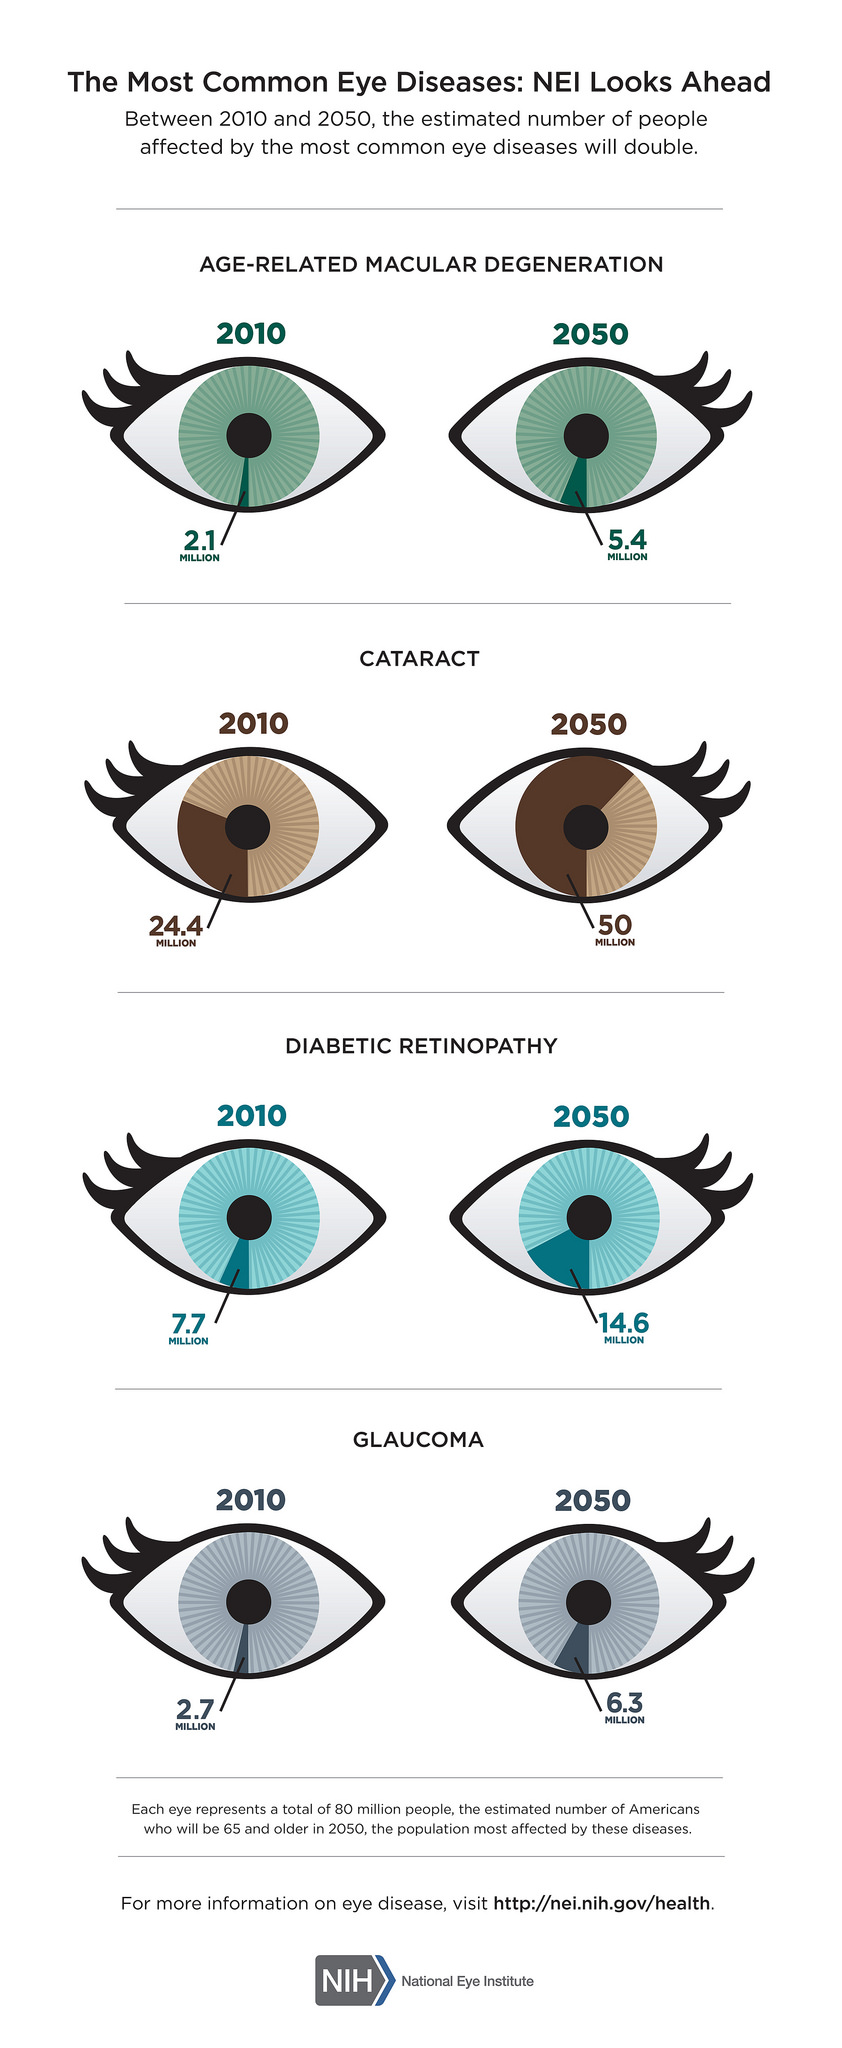 eye vision case 10 11 There are many variations of the snellen eye chart, but in general they show 11 rows of capital letters  in some cases a standard snellen eye chart cannot be used .